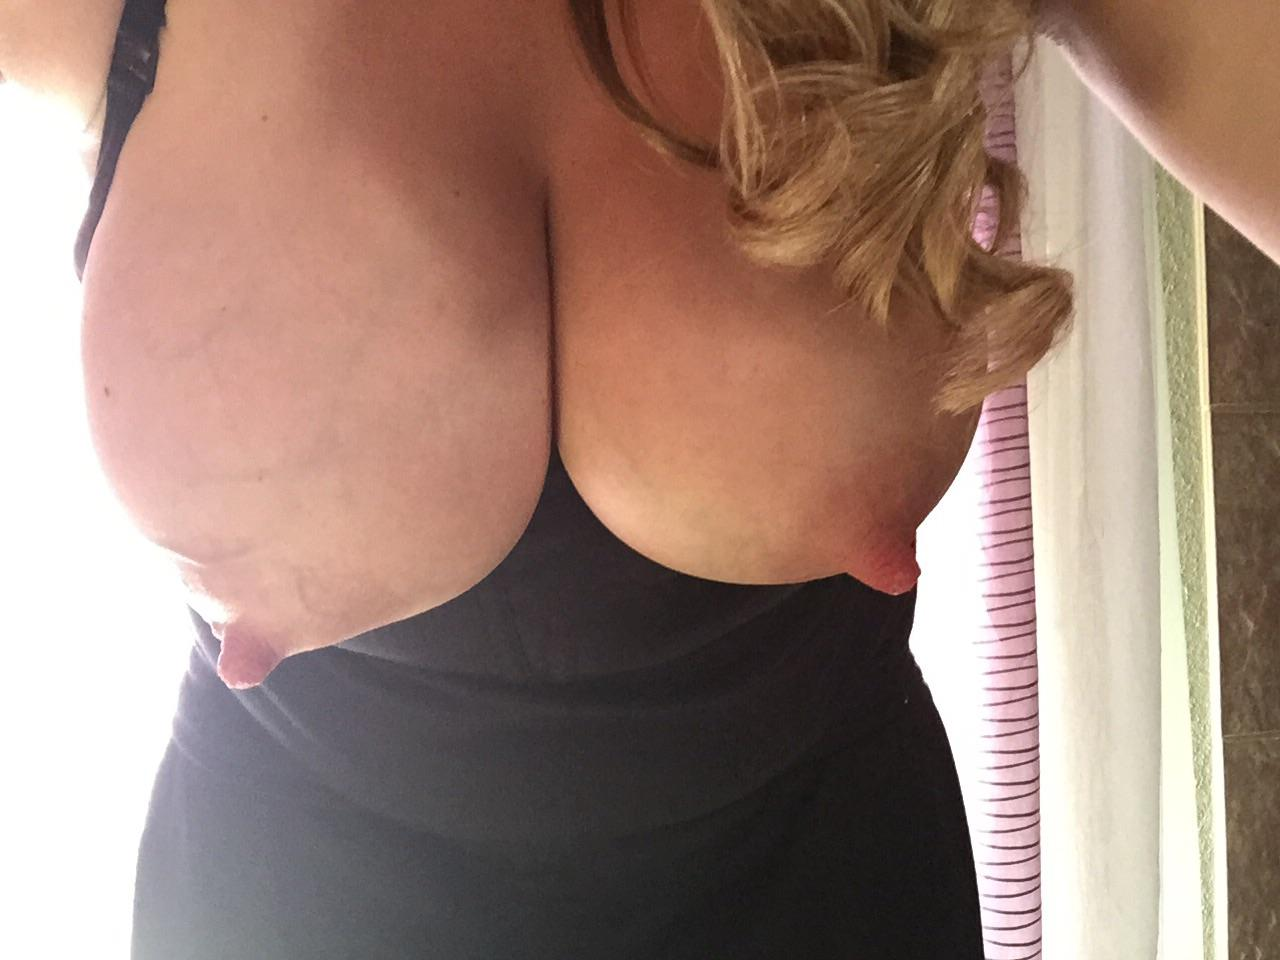 Girls just showif there boobs naked